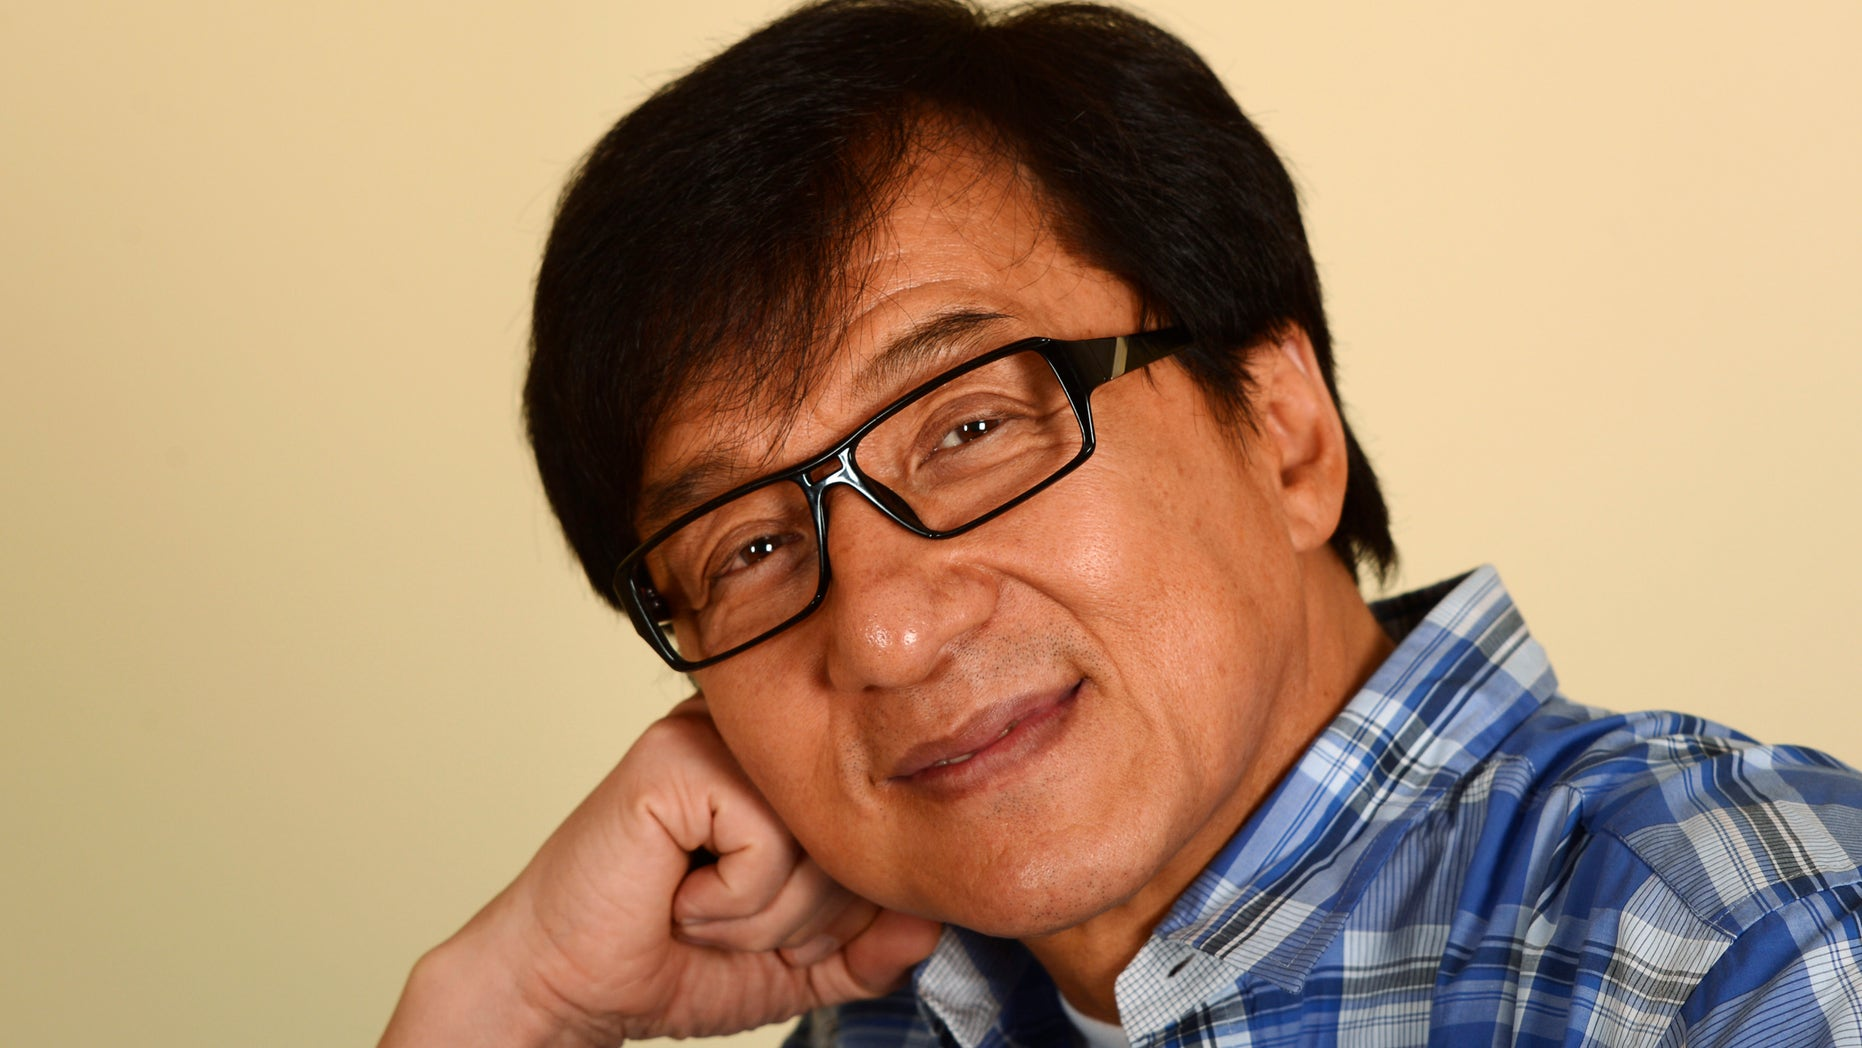 "Hong Kong actor Jackie Chan poses during a promotional event for his film ""Chinese Zodiac"" in Beverly Hills, California October 16, 2013. Hong Kong martial arts film star Chan, 59, who declared last year at France's Cannes film festival that he was retiring from action films, now says that after more than a decade of contemplating quitting, he is going to let his body decide. As Chan starts to enter his twilight years he laments how Hollywood typecasting may force him to begin using a stunt double for his acrobatic scenes as he believes Hollywood studios would never cast him in dramatic roles. Picture taken October 16, 2013. To match story PEOPLE-JACKIECHAN/      REUTERS/Phil McCarten (UNITED STATES - Tags: ENTERTAINMENT PROFILE HEADSHOT) - RTX14FYI"